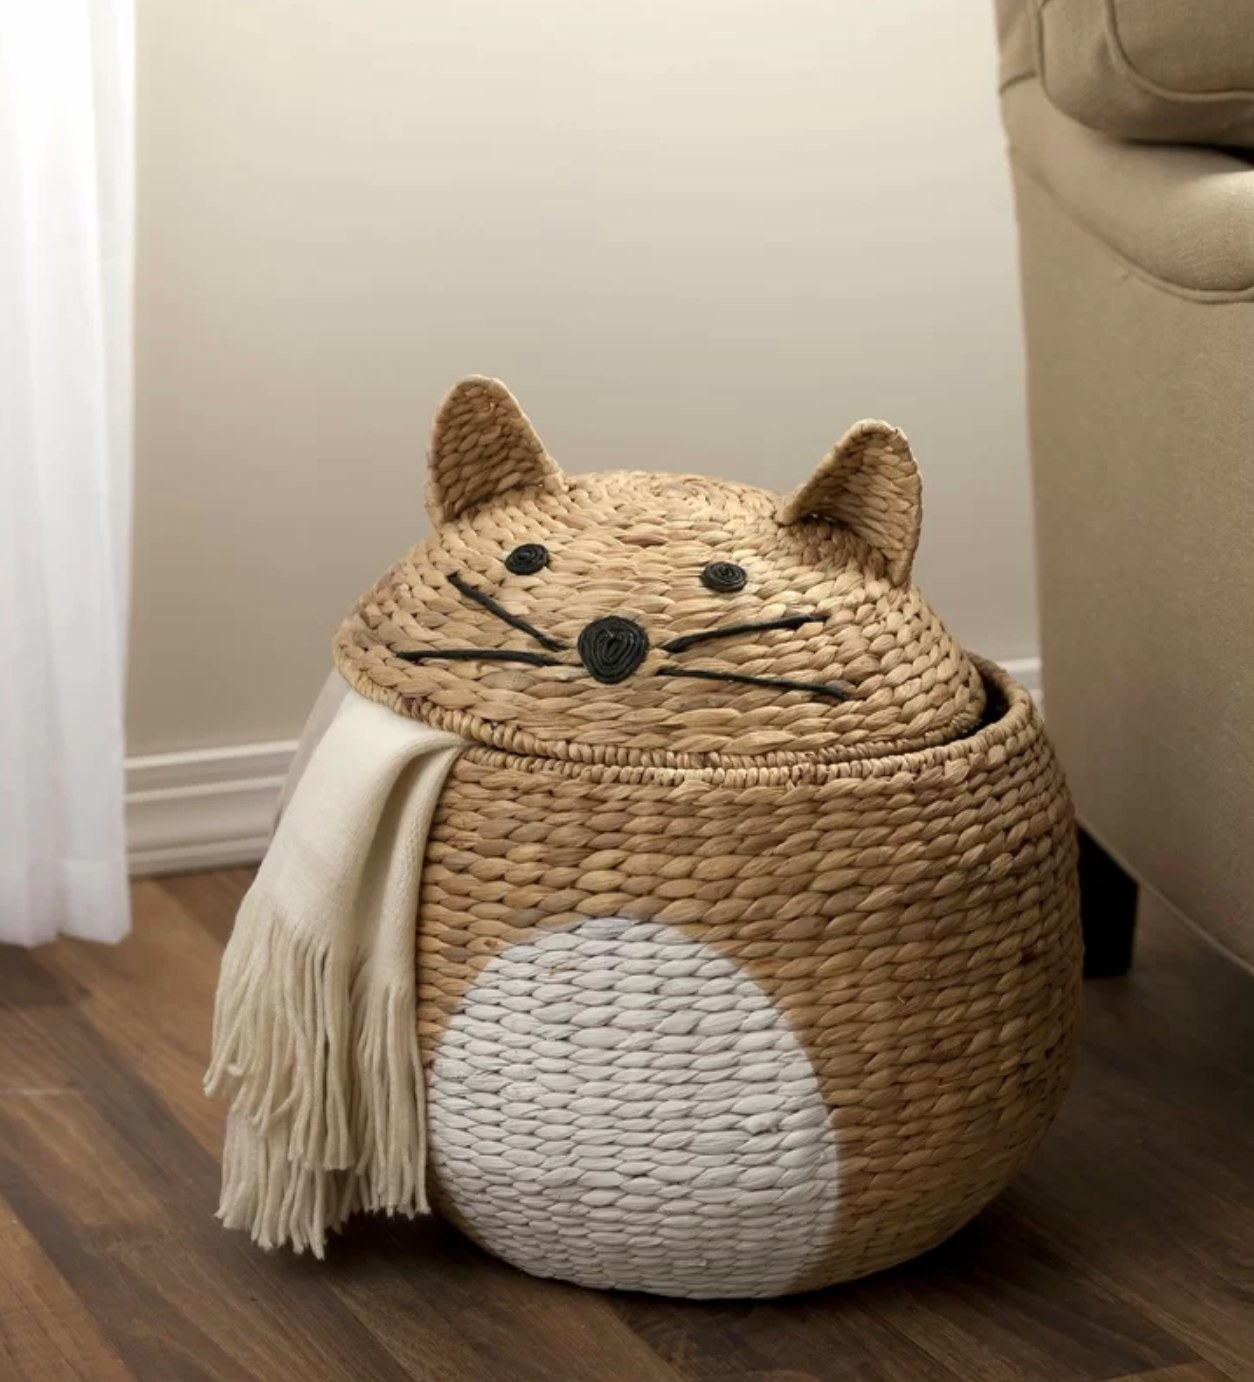 Cat-shaped basket with white scarf inside